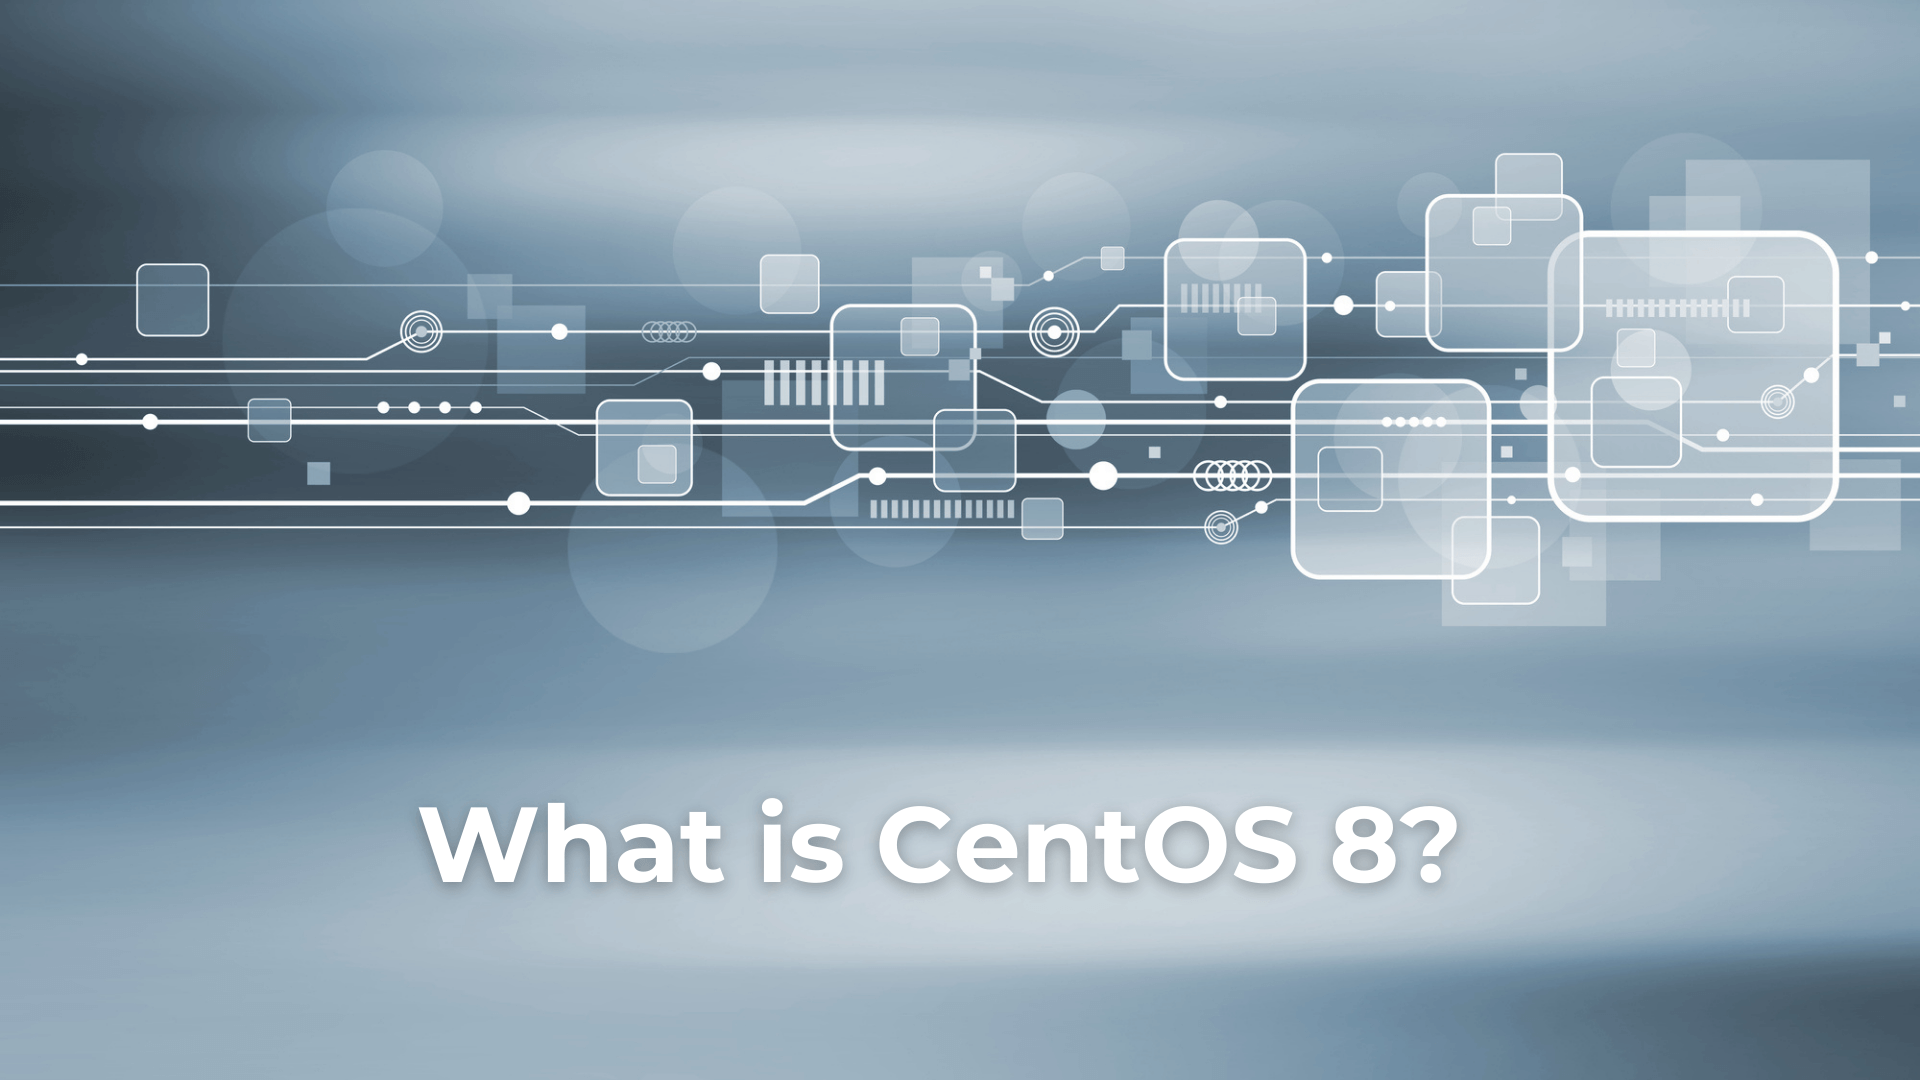 What is CentOS 8?